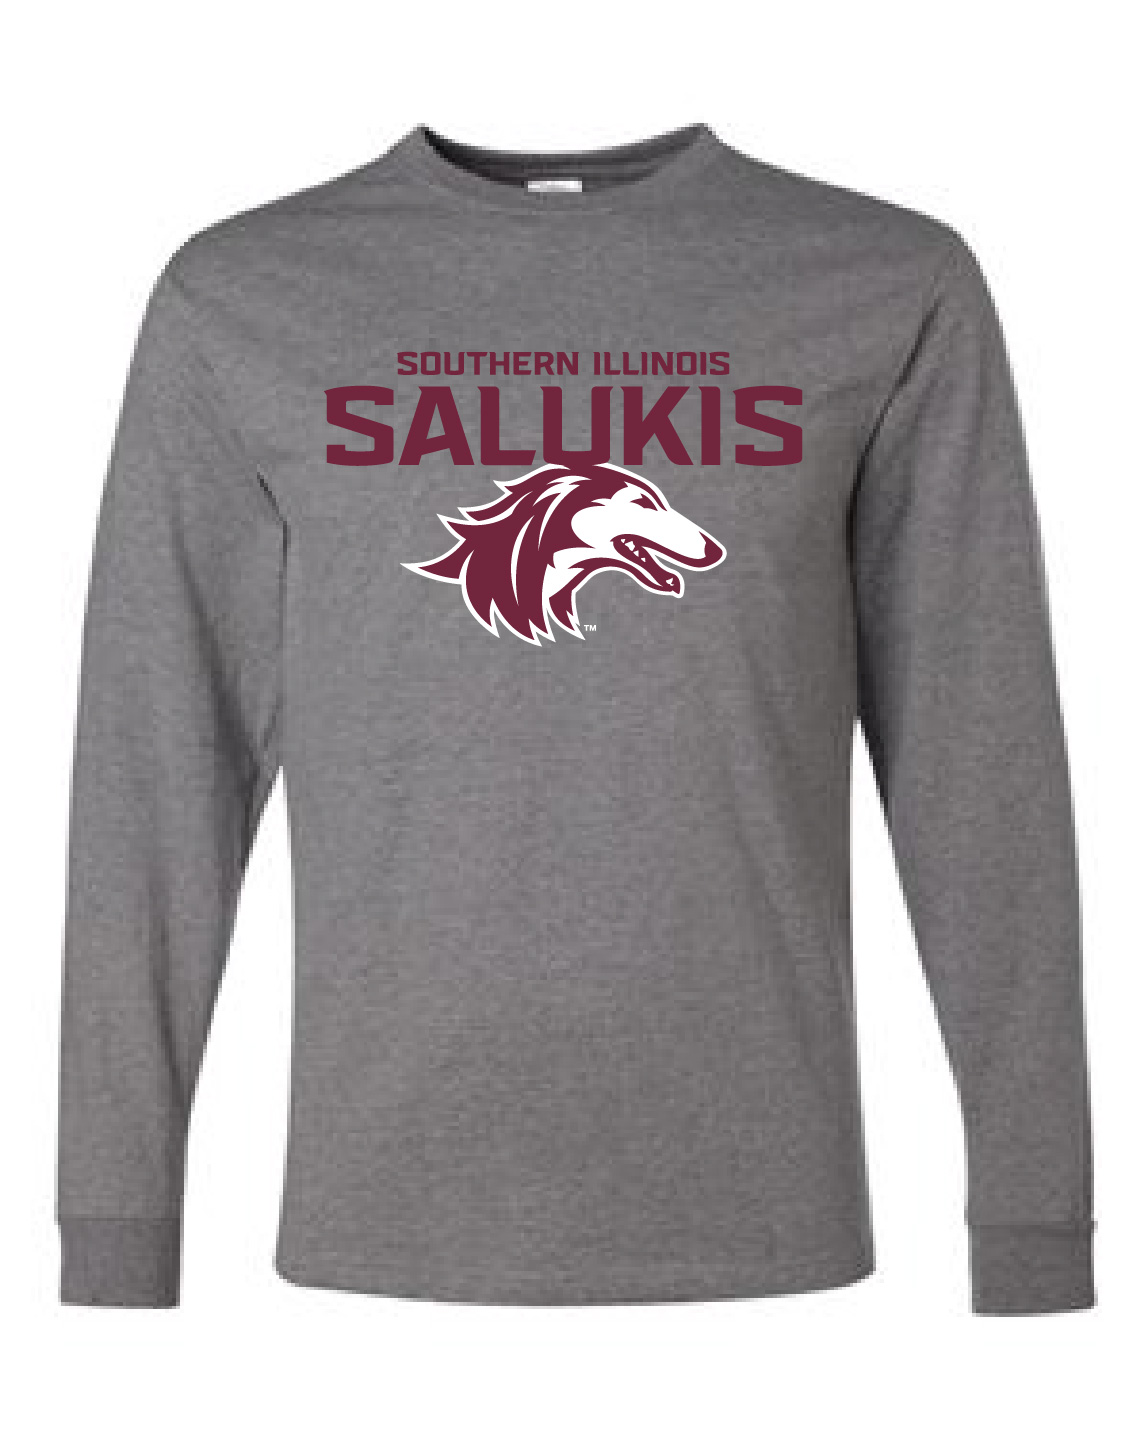 Image for the NEW 2019 ATHLETIC LOGO SOUTHERN ILLINOIS SALUKIS LONG SLEEVE T-SHIRT product